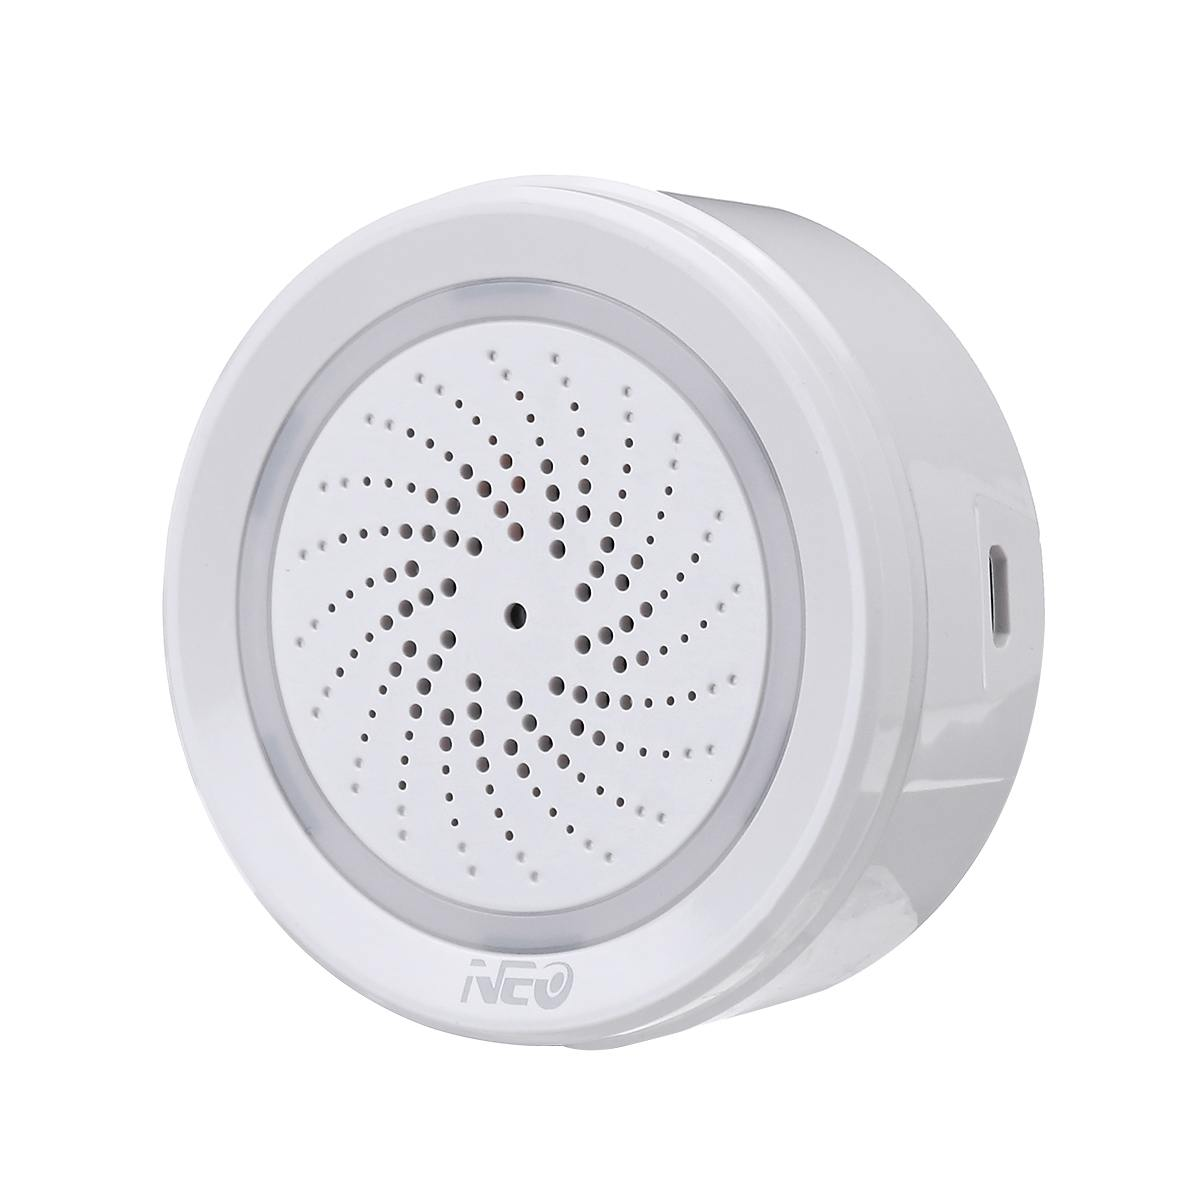 2.4GHz NEO WIFI Smart Temperature Humidity Sensor Wireless Battery Powered Sound Alarm APP Control  For Home Office Work White